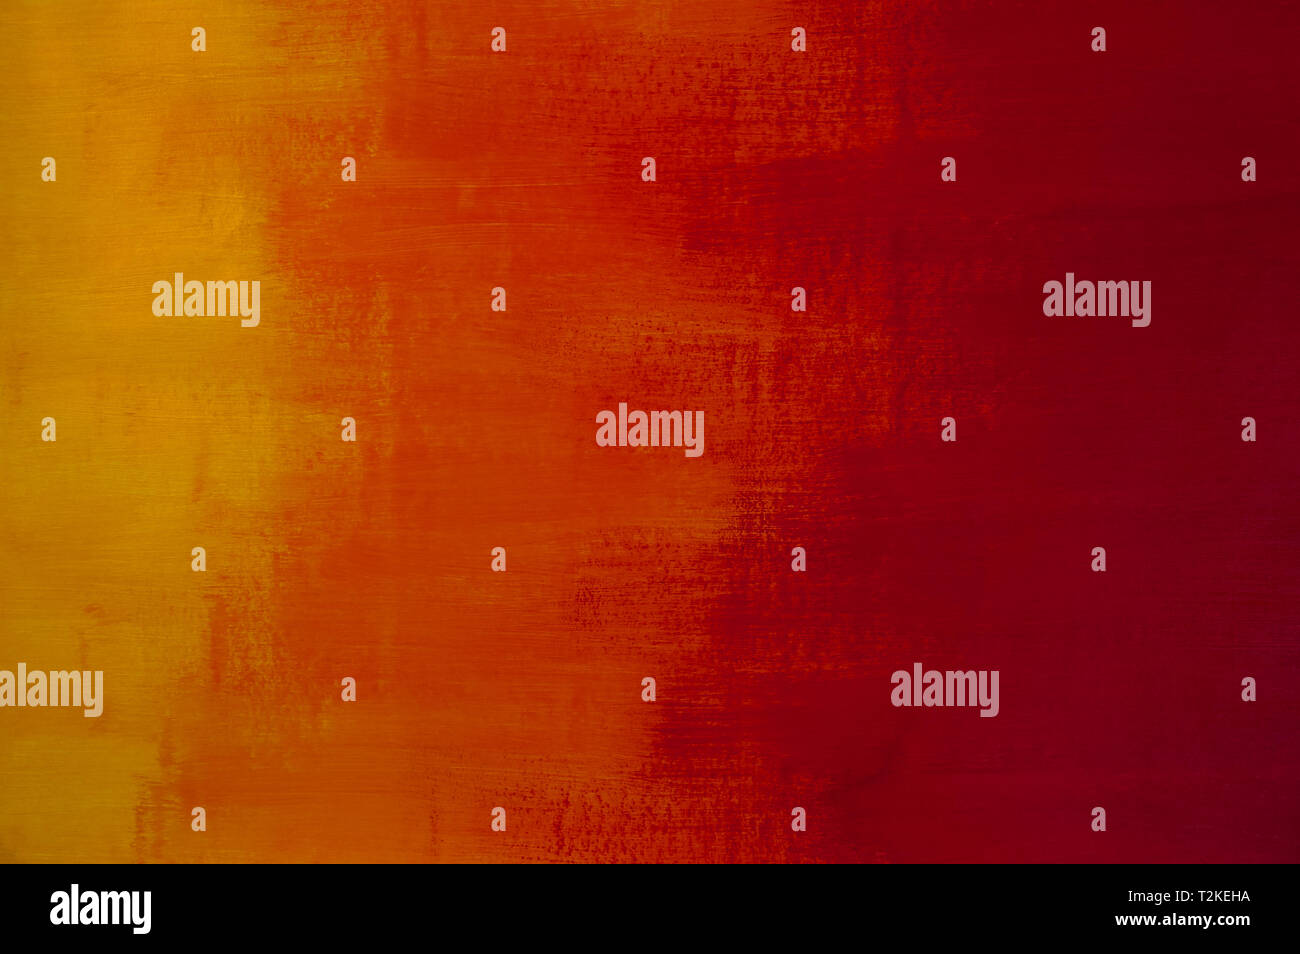 Minimalist paint texture background with warm tones - red, orange and yellow - Stock Image